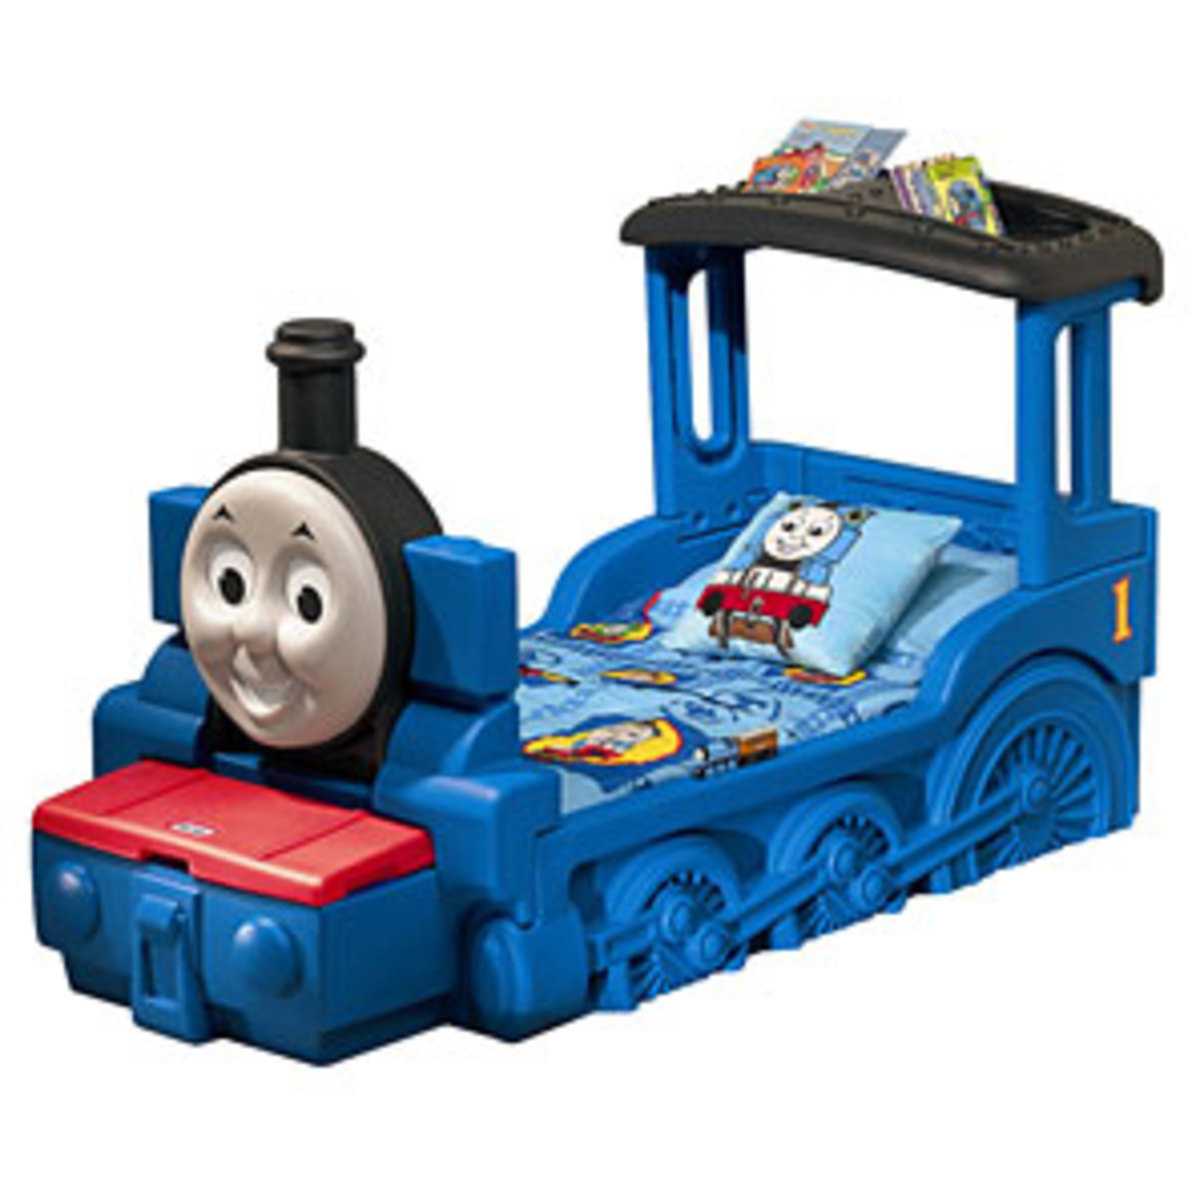 Thomas the Tank Engine Beds, Toppers and Bedroom Sets - Convert Bed into Thomas The Train Bed